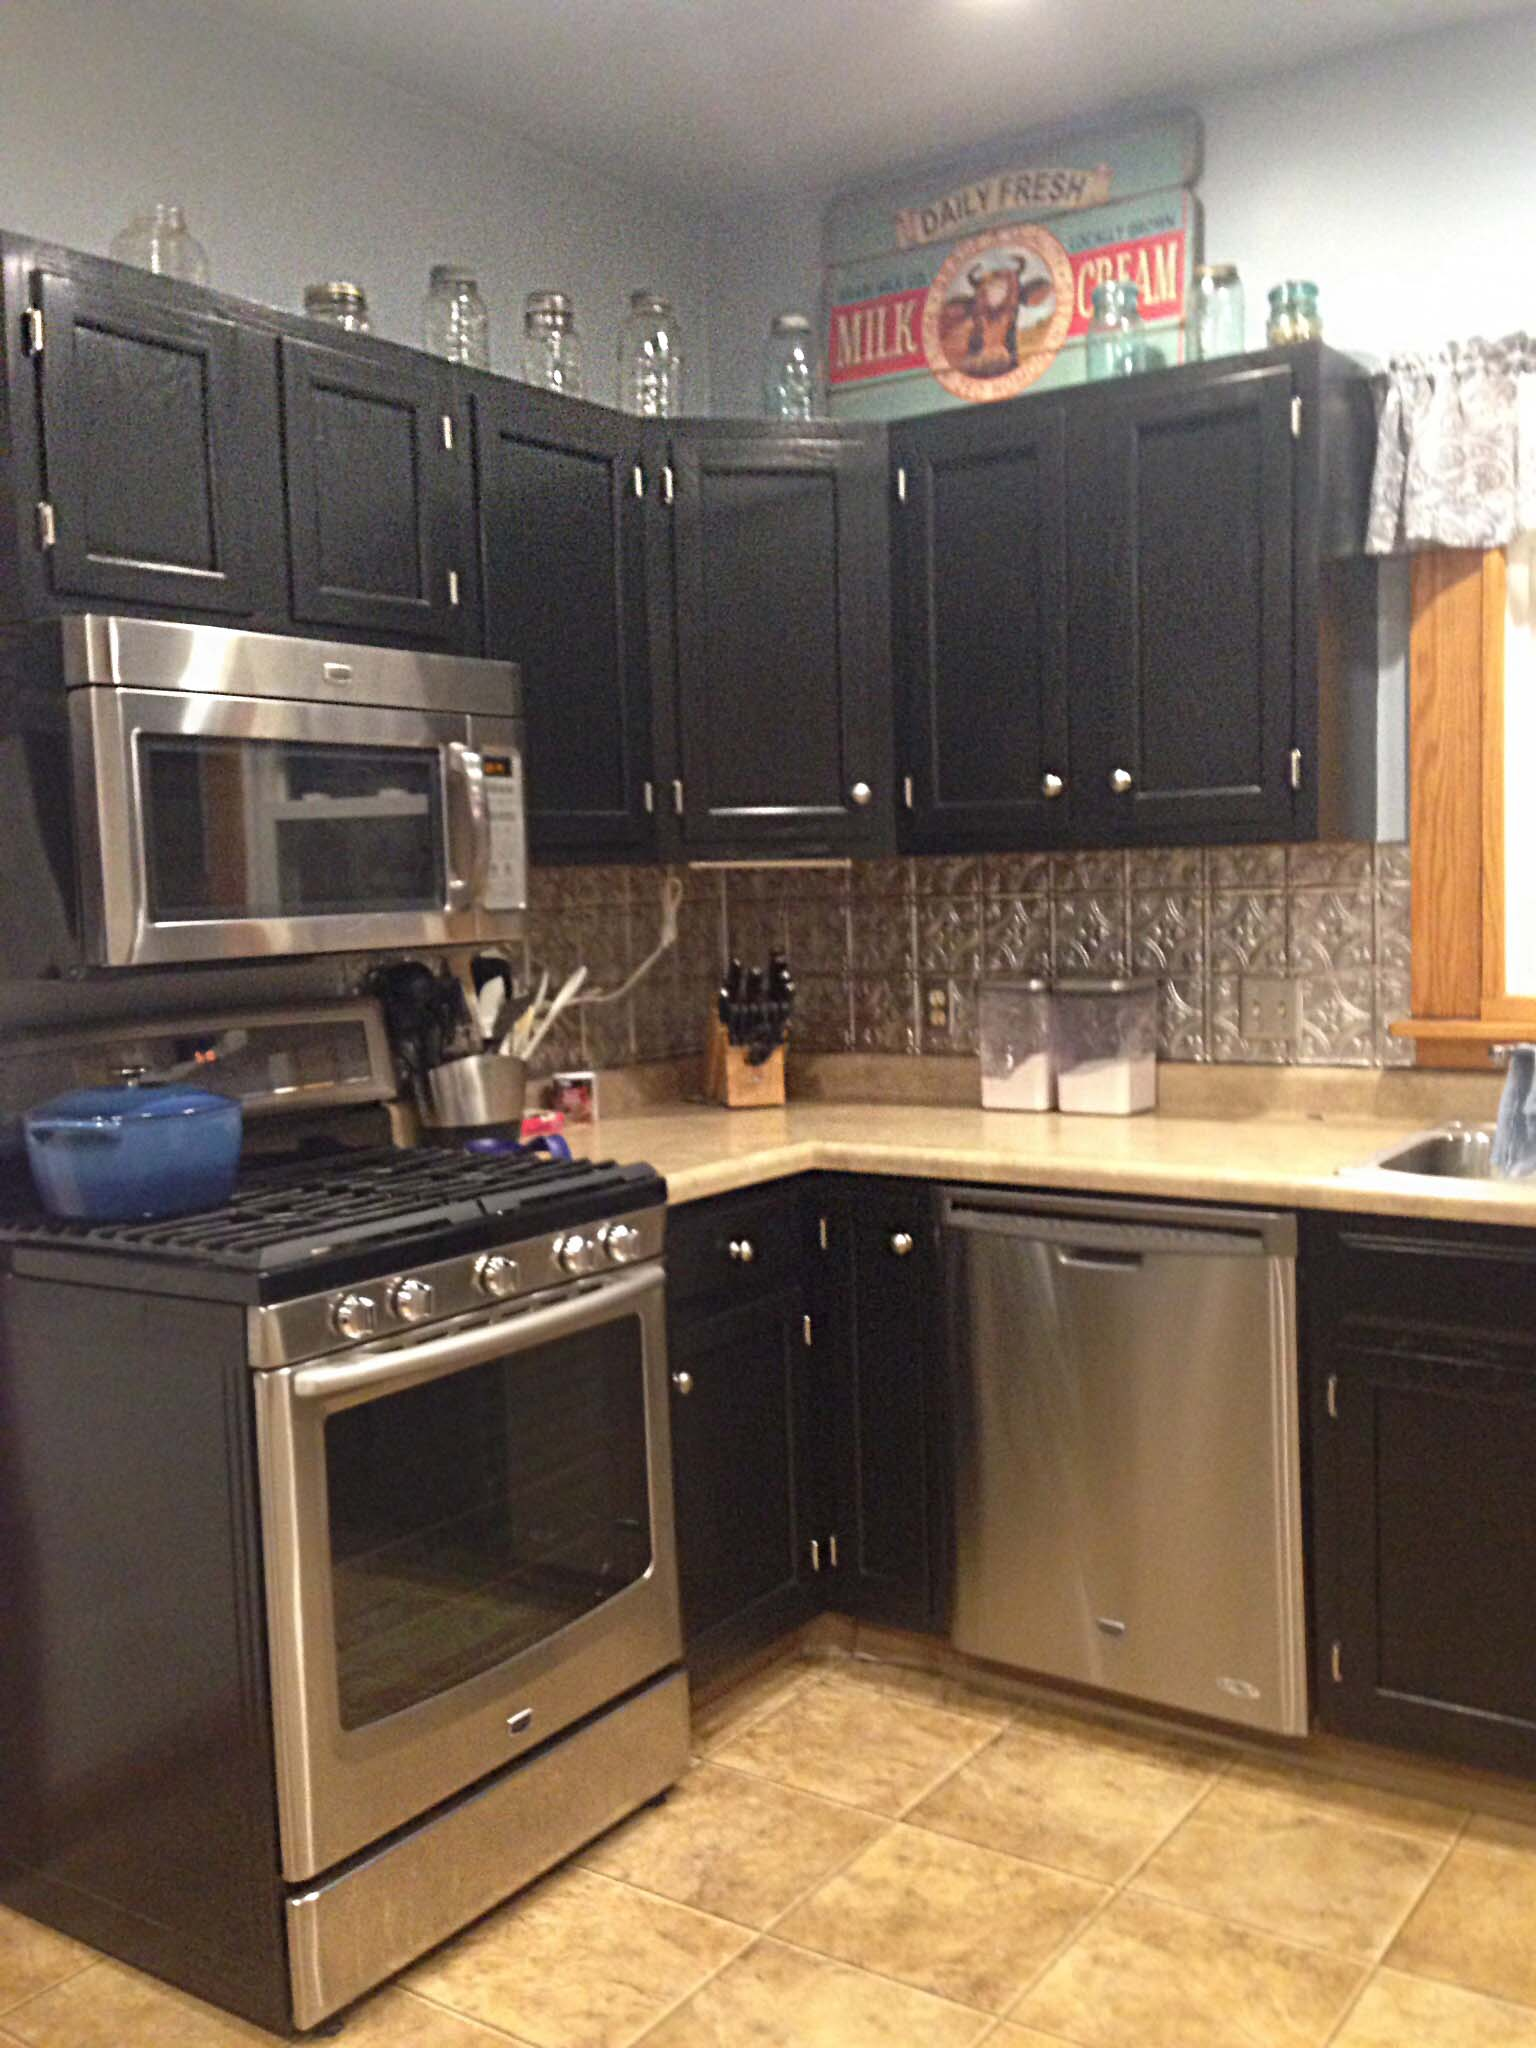 Kitchen Cabinets in Black Gel Stain & Kitchen Cabinets in Black Gel Stain | General Finishes Design Center